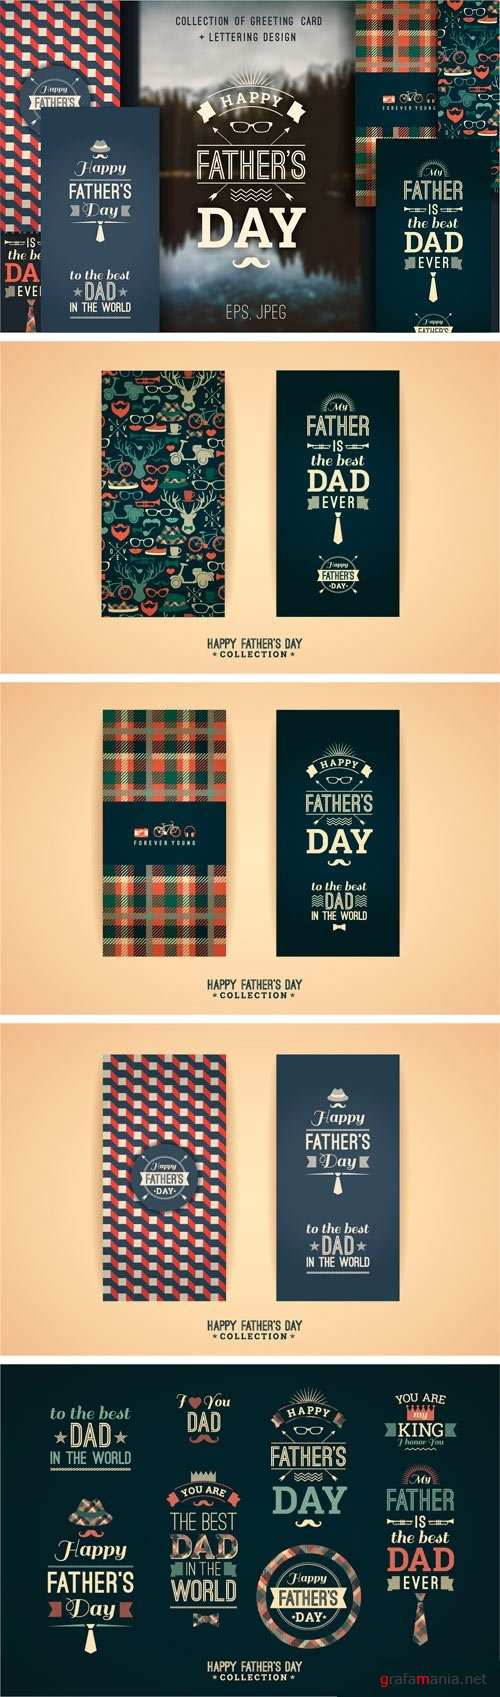 Happy Father's Day Collection - 1547375